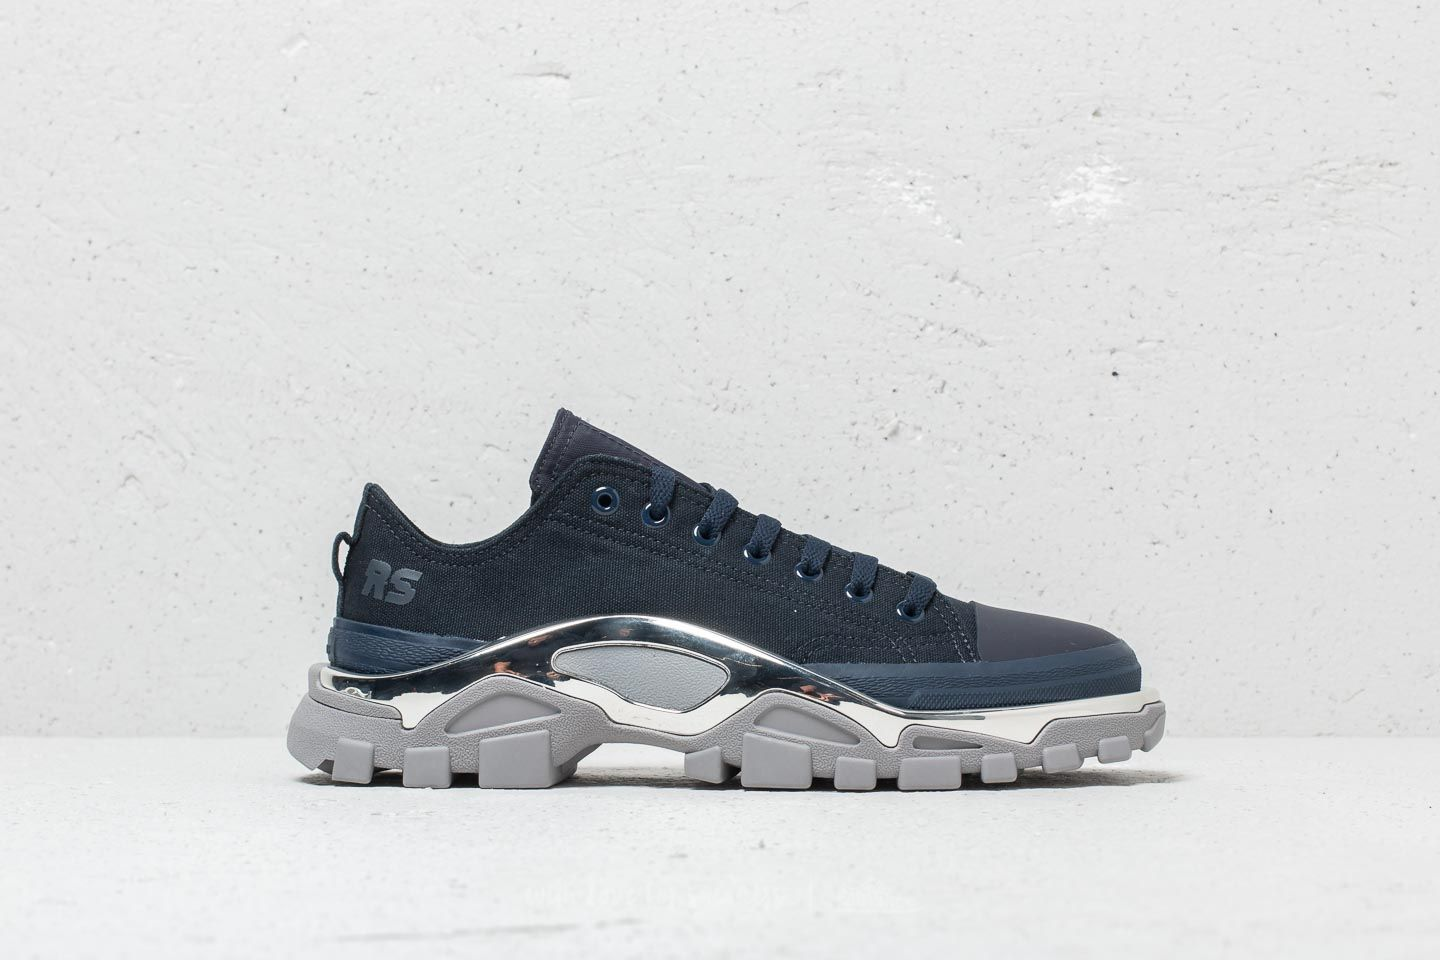 adidas x Raf Simons Detroit Runner Night Navy  Night Navy  Ch Solid Grey at 3b2156bc1